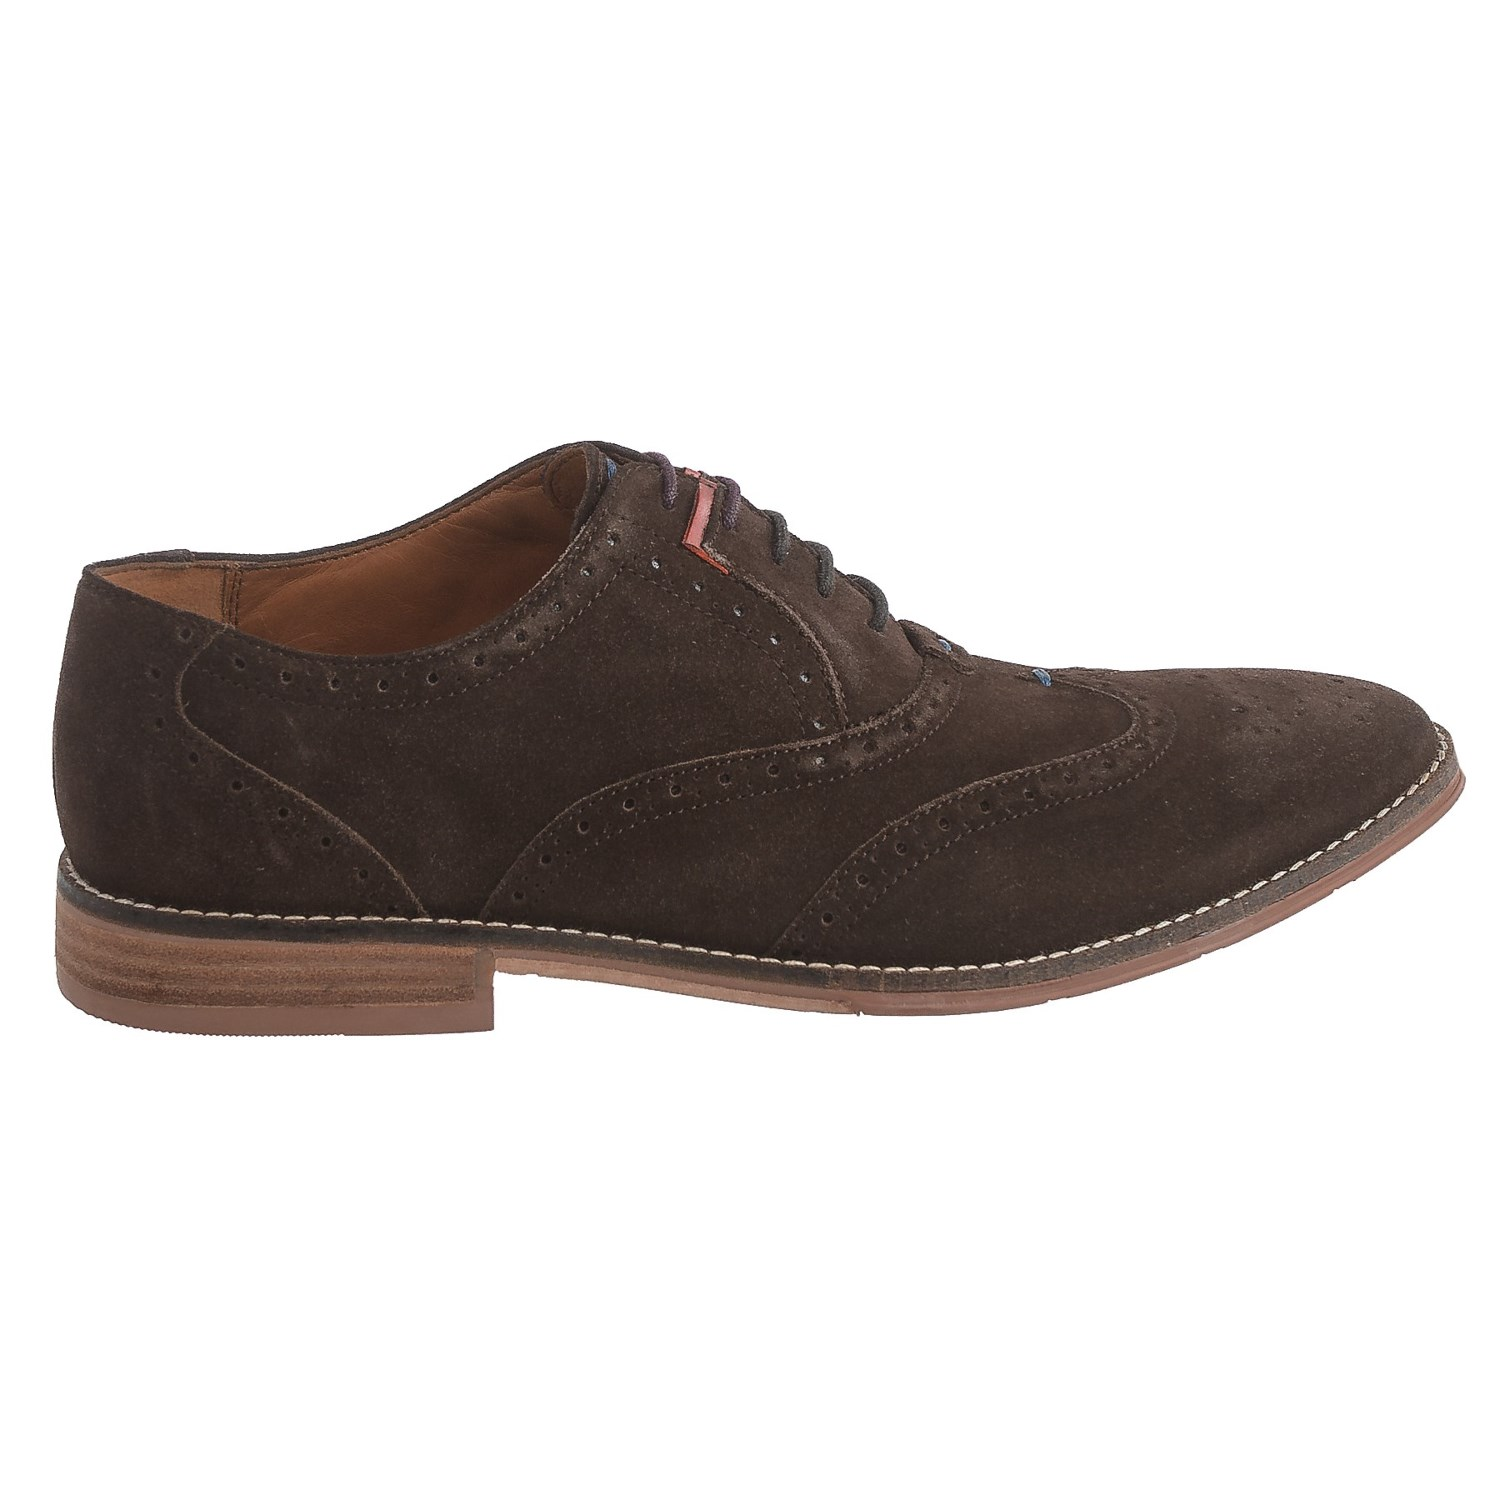 Hush Puppies Shoes Online